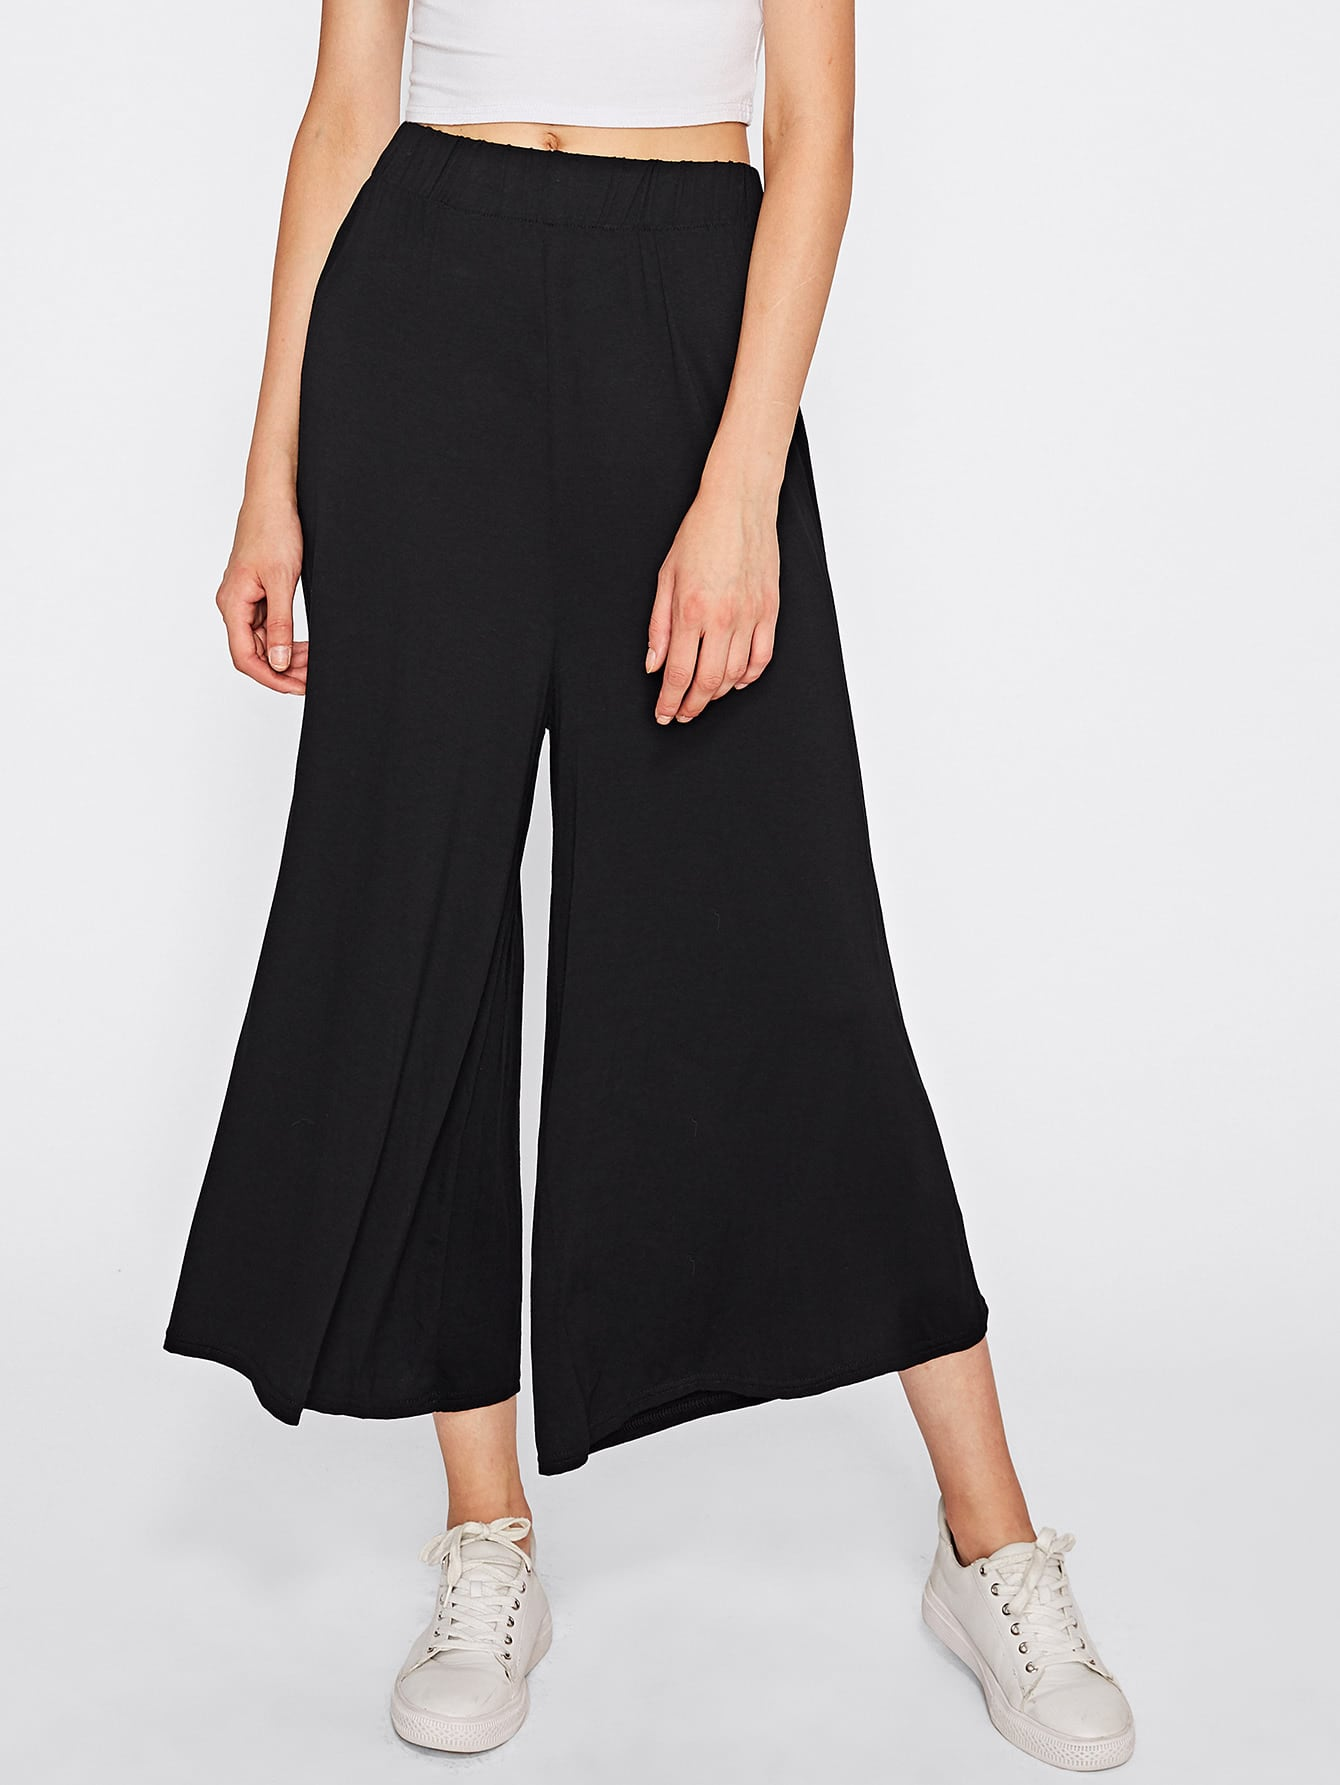 Wide Leg Elastic Waist Pants elastic ruched waist wide leg pants